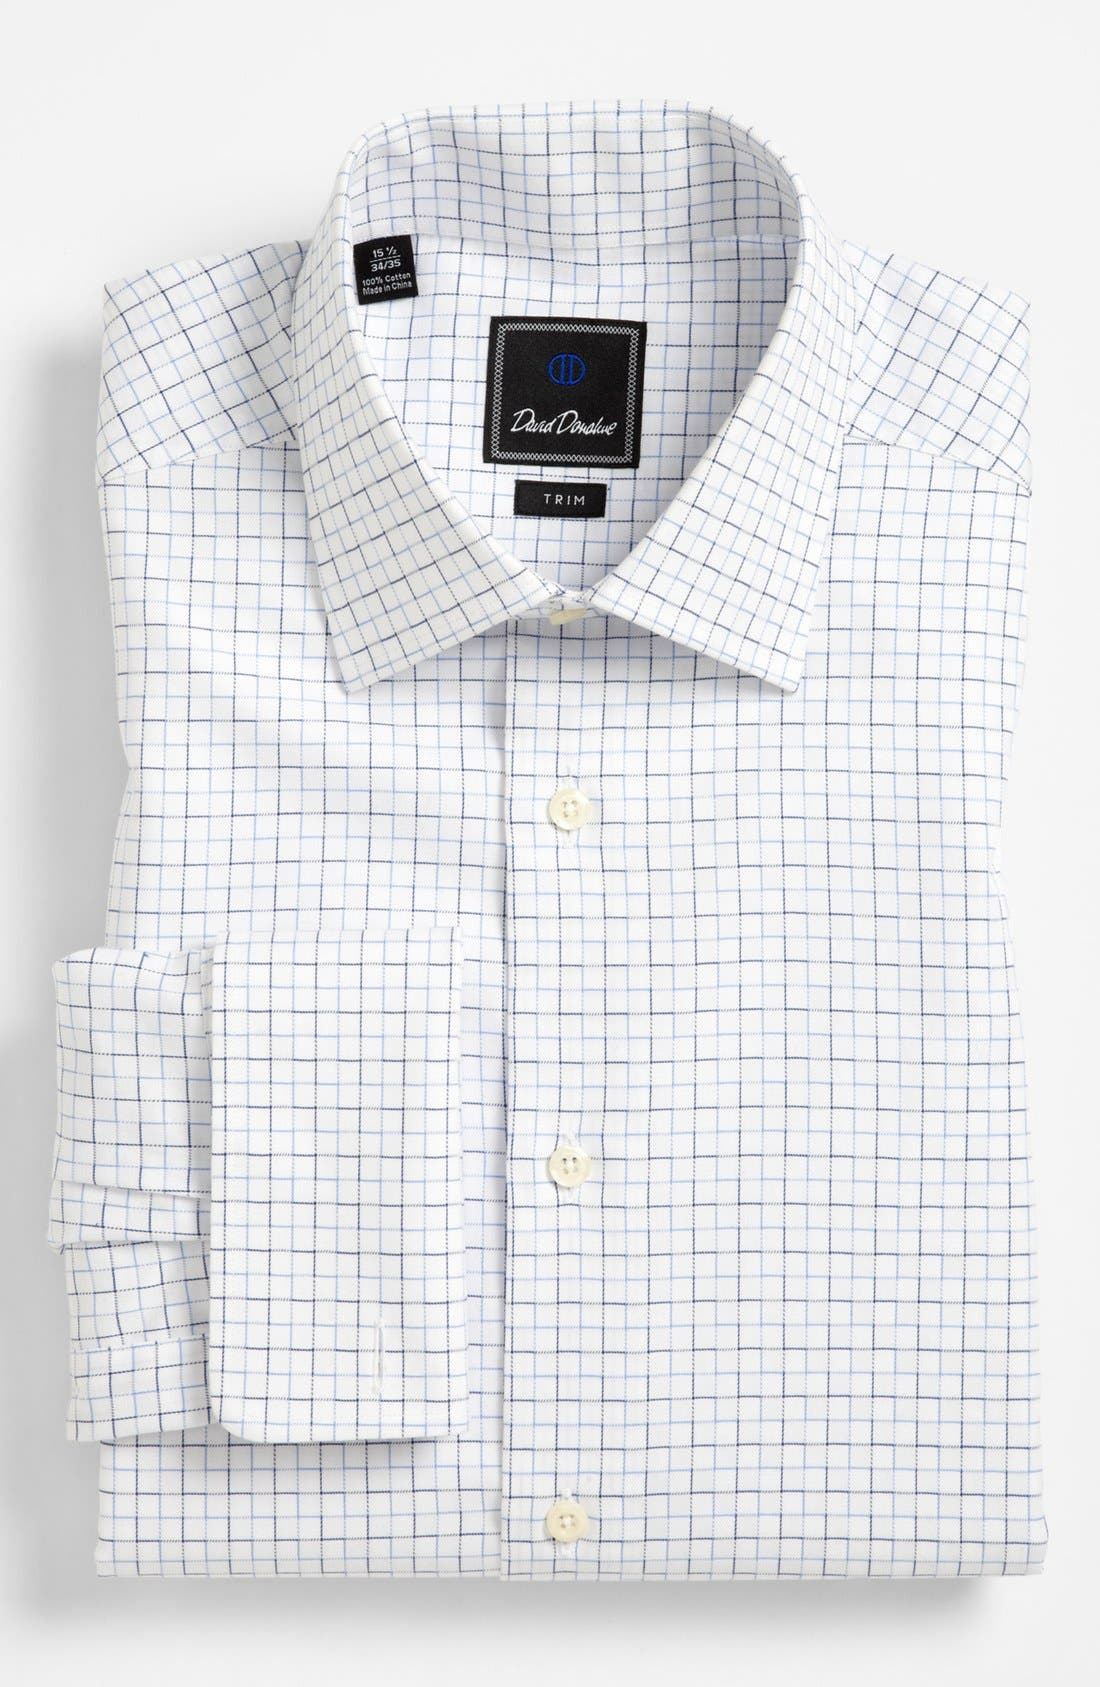 Alternate Image 1 Selected - David Donahue Trim Fit French Cuff Dress Shirt